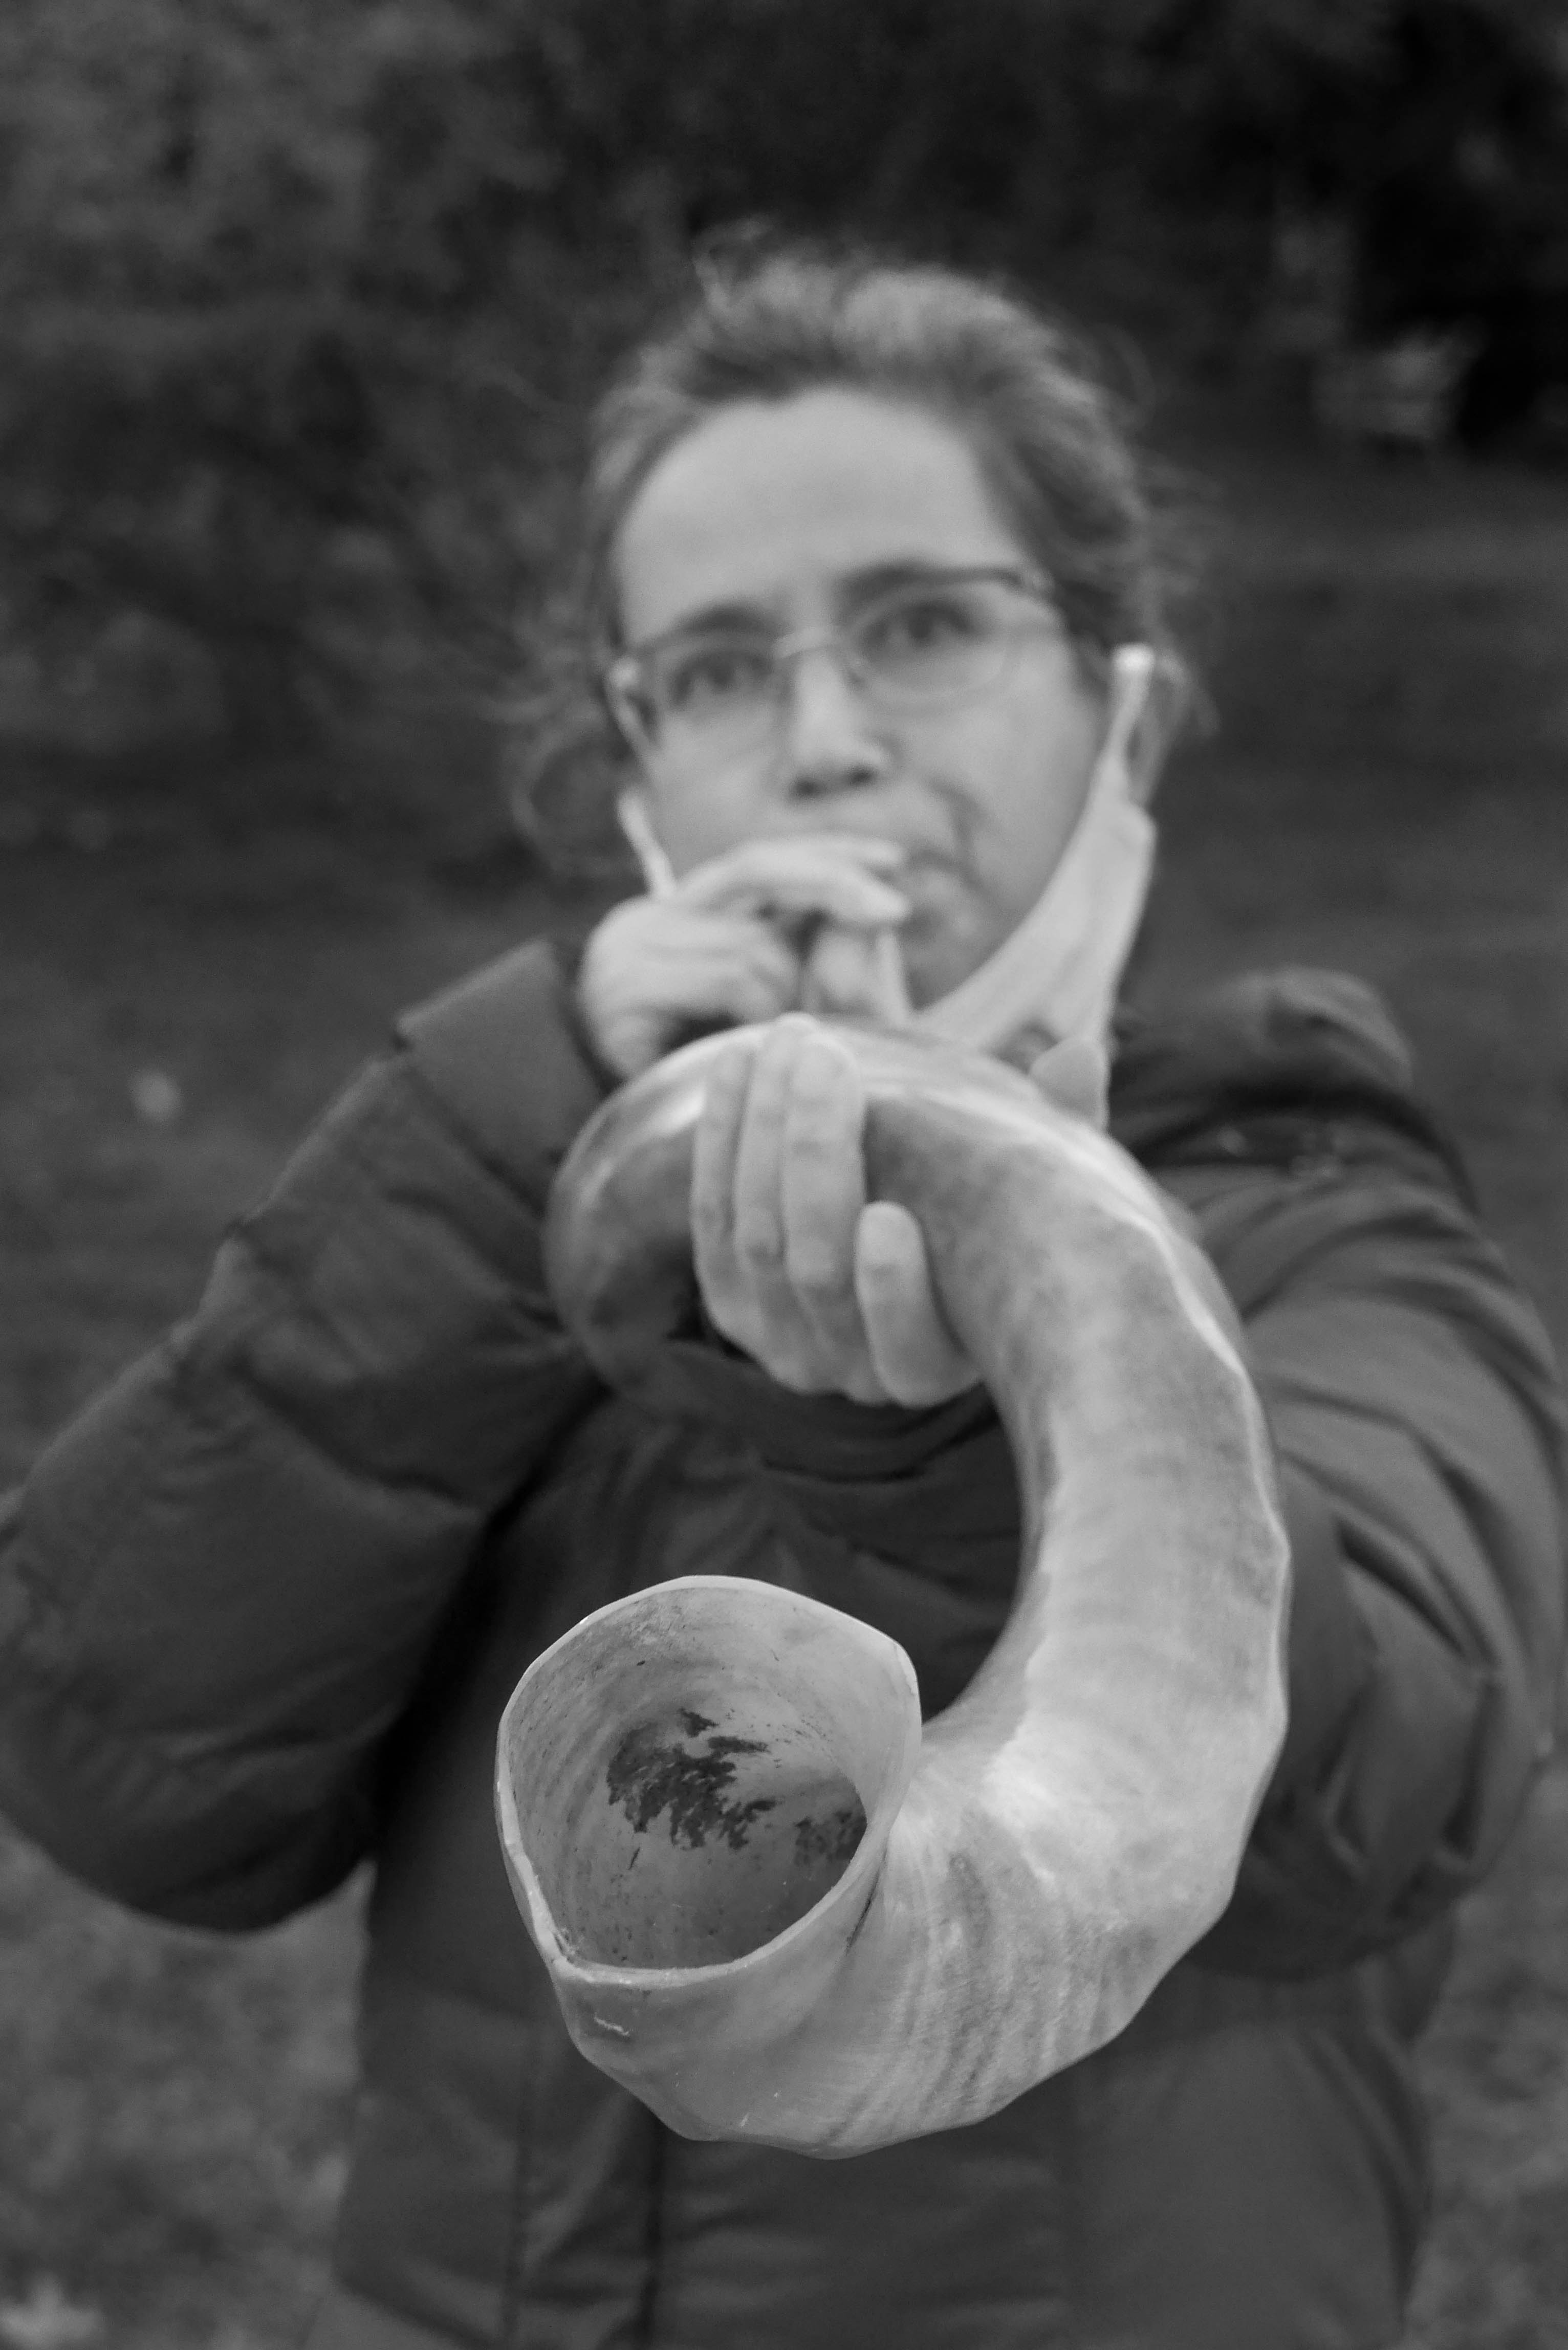 Quarantine Diary 48Walk in Rock Creek Park, Washington DC, with Ruth.——Vigil for social justice with Fabrangen members in front of the Washington Ethical Society7750 16th St. NWWashington DC 20012Shofar blowing by Fran Teplitz and Judy Galat